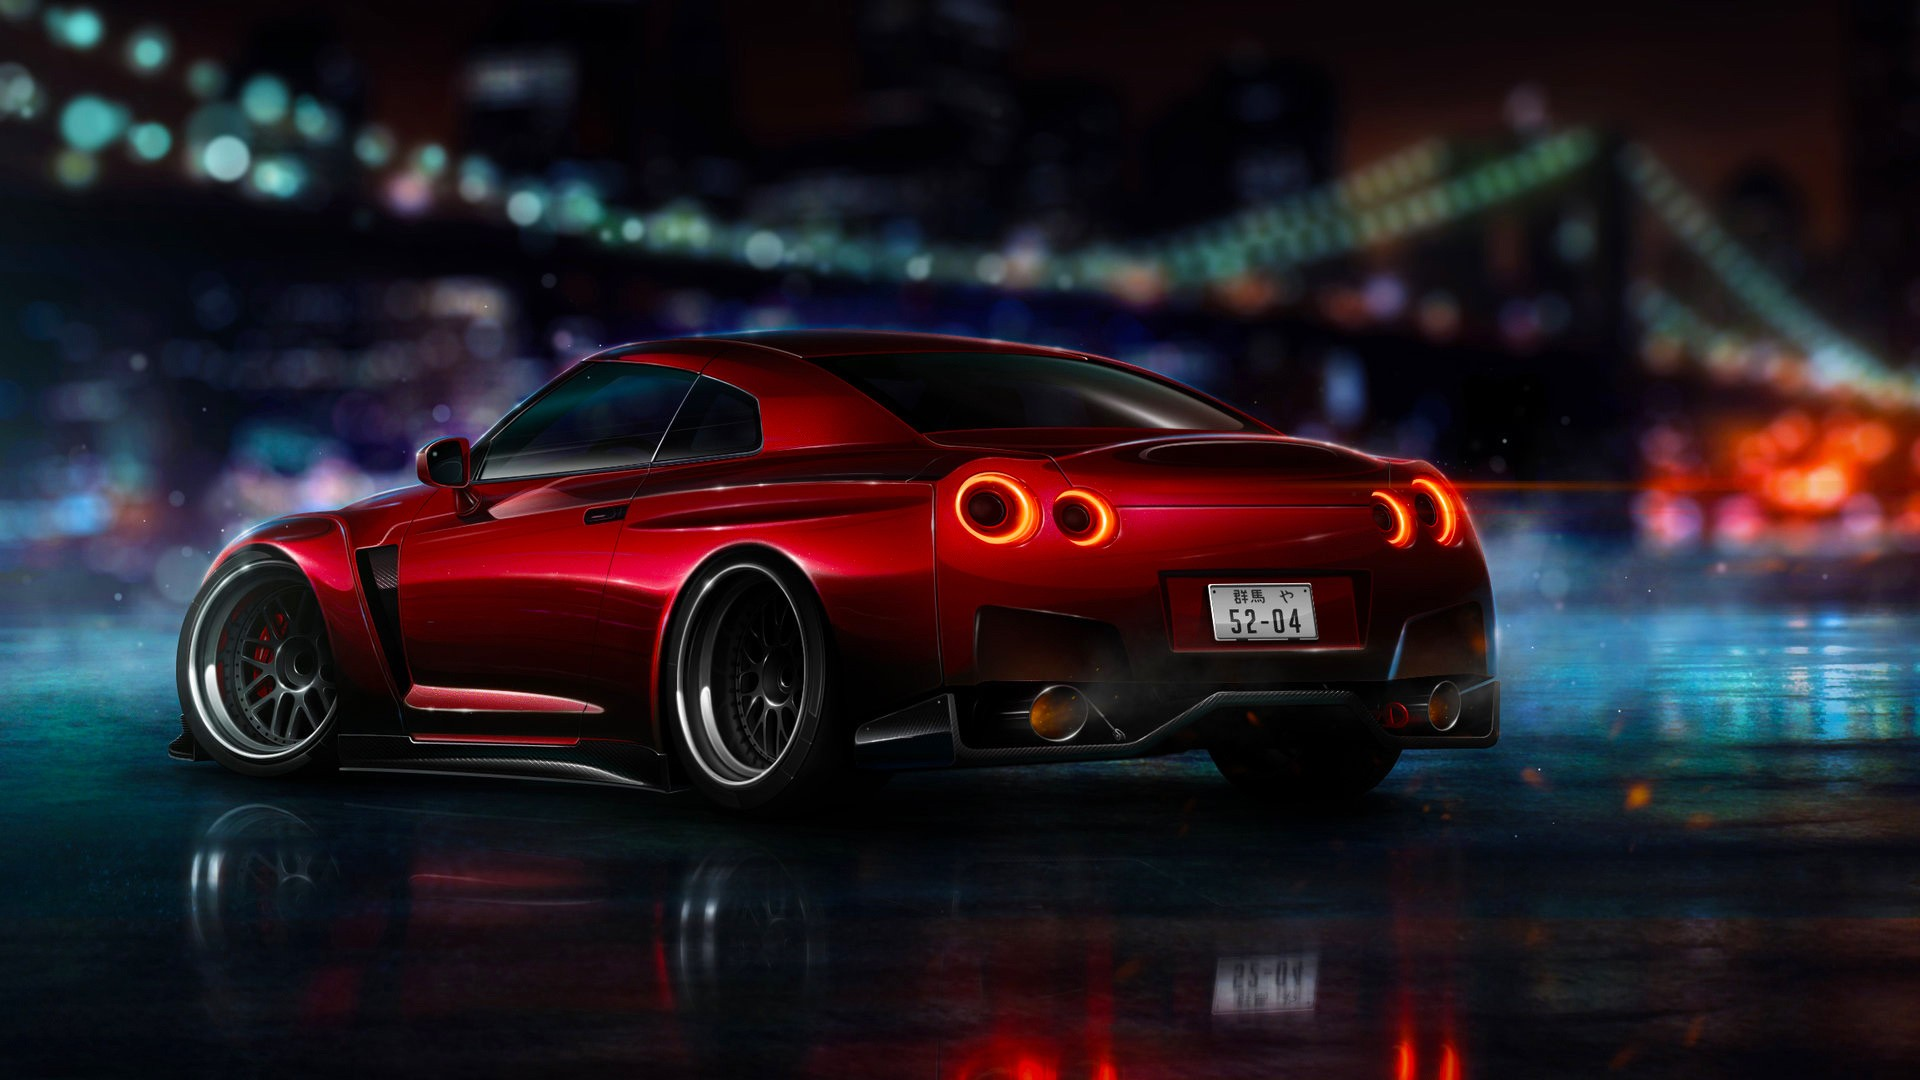 Hd Car Wallpapers For Android Tablets Nissan Gt R R35 Wallpaper Hd Car Wallpapers Id 5716